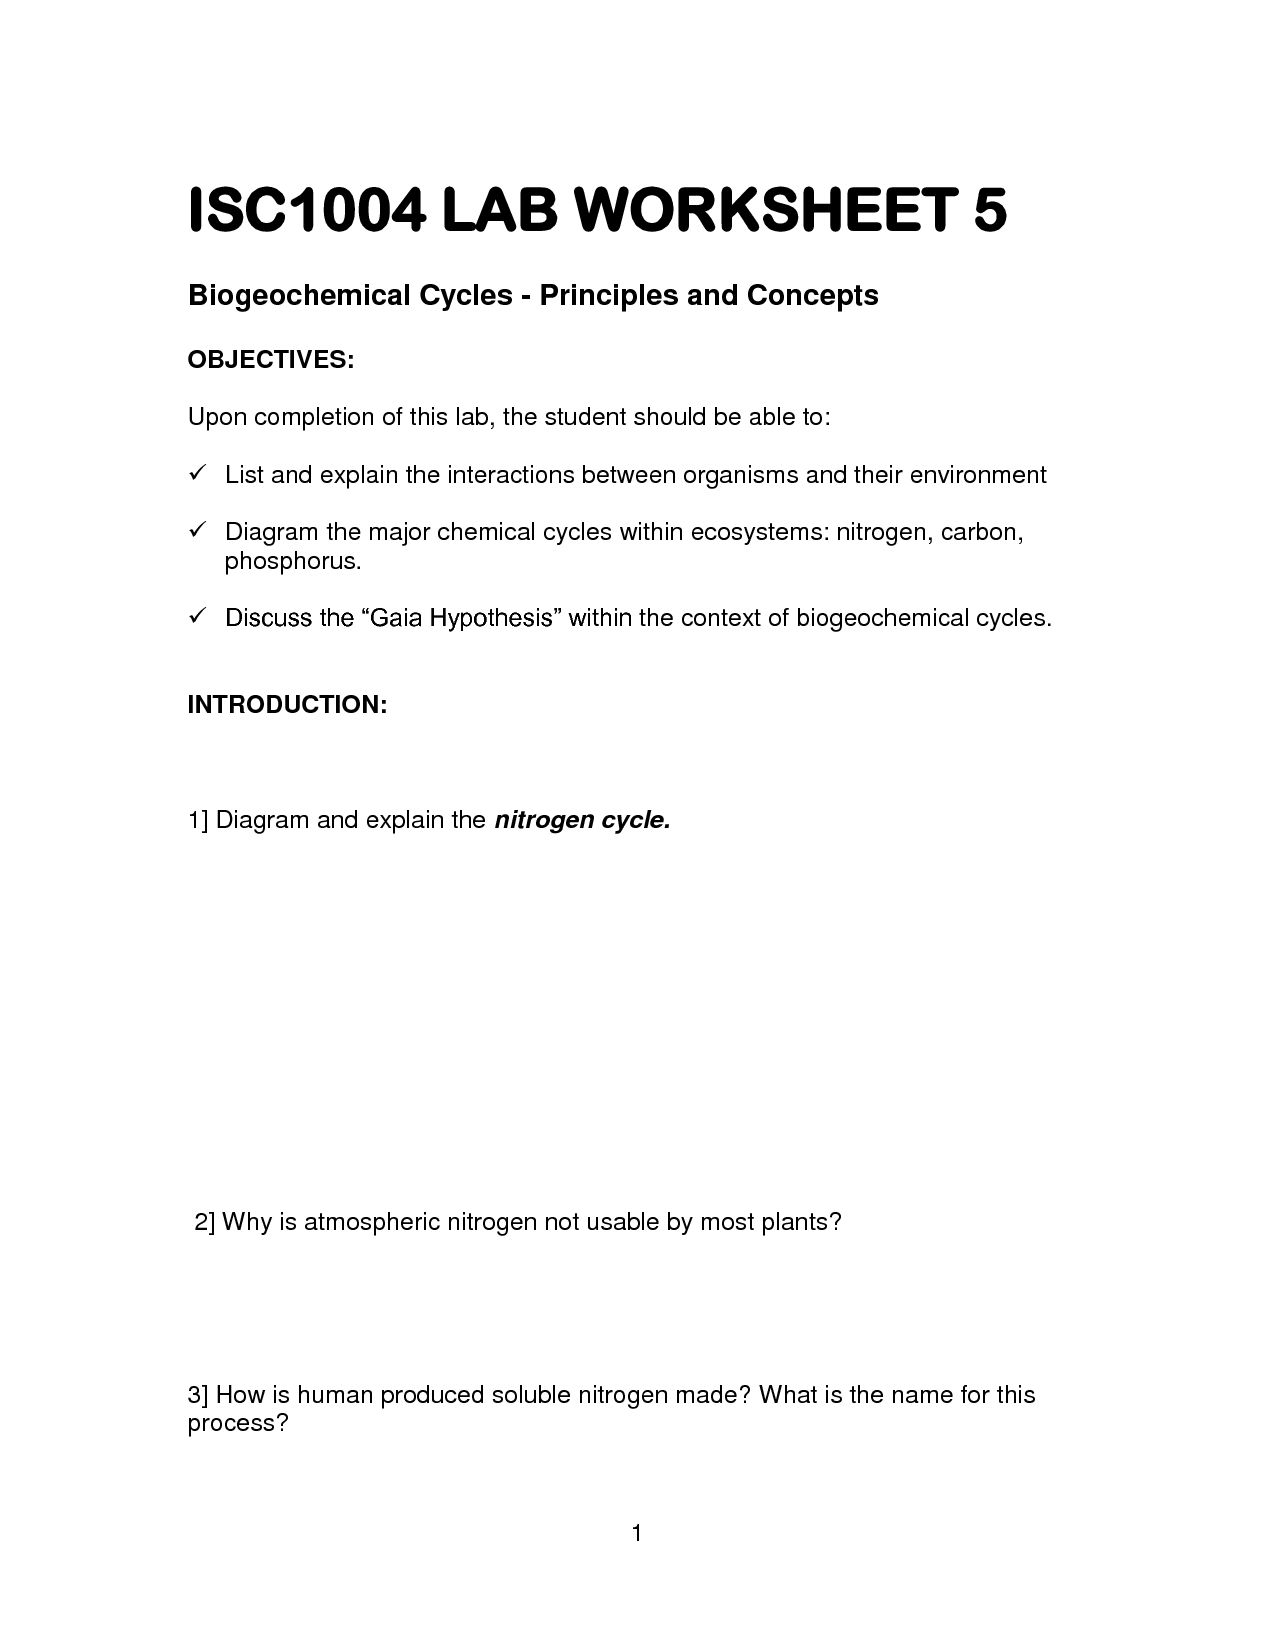 Nitrogen Cycle Worksheet Answer Key